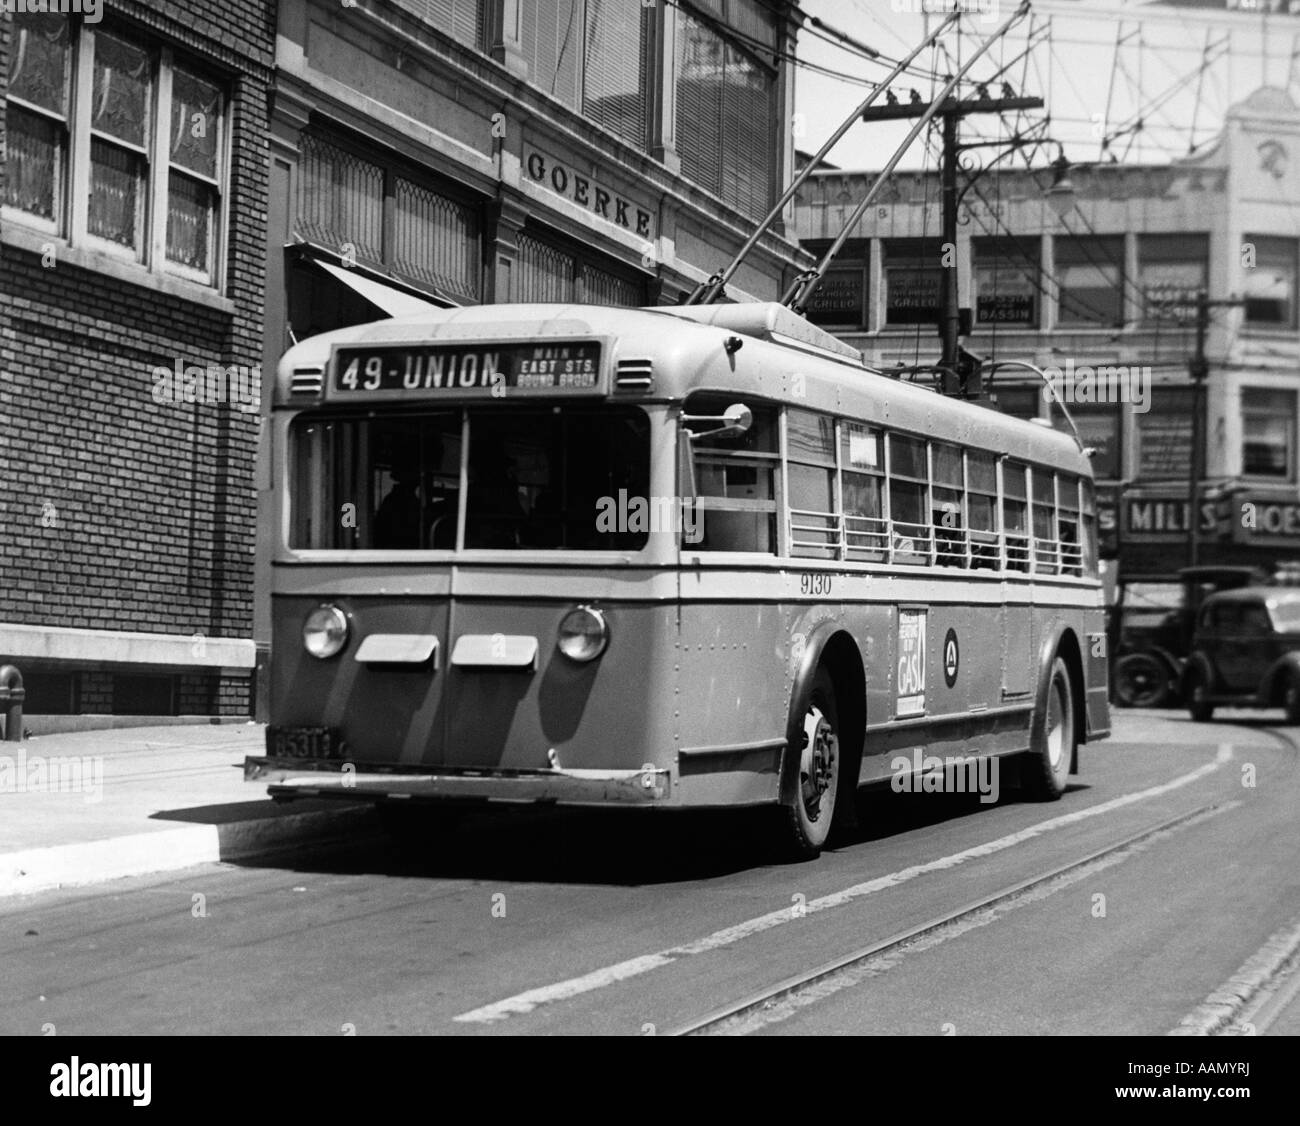 1930s 1940s ALL SERVICE VEHICLE OPERATES AS TRACKLESS TROLLEY ELECTRIC BUS OR GASOLINE BUS PUBLIC TRANSPORTATION - Stock Image